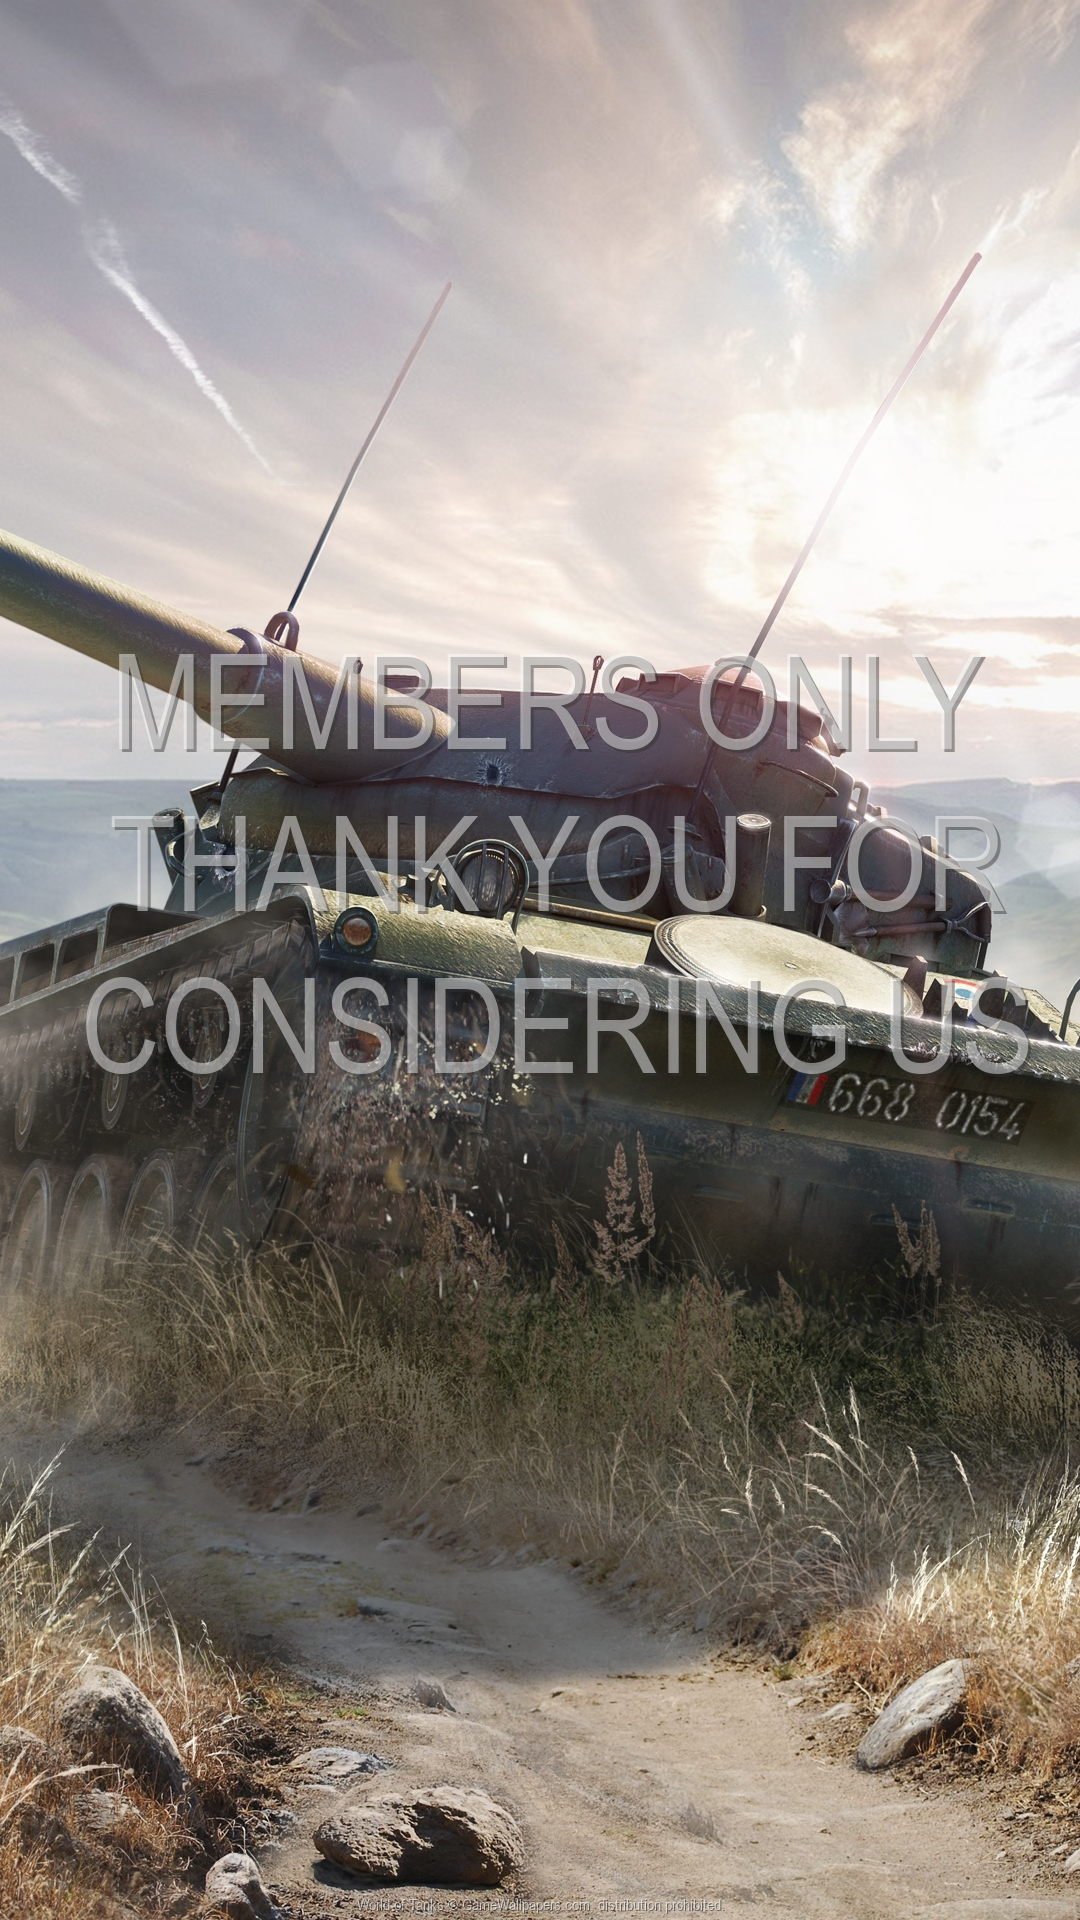 World of Tanks 1920x1080 Mobile wallpaper or background 15